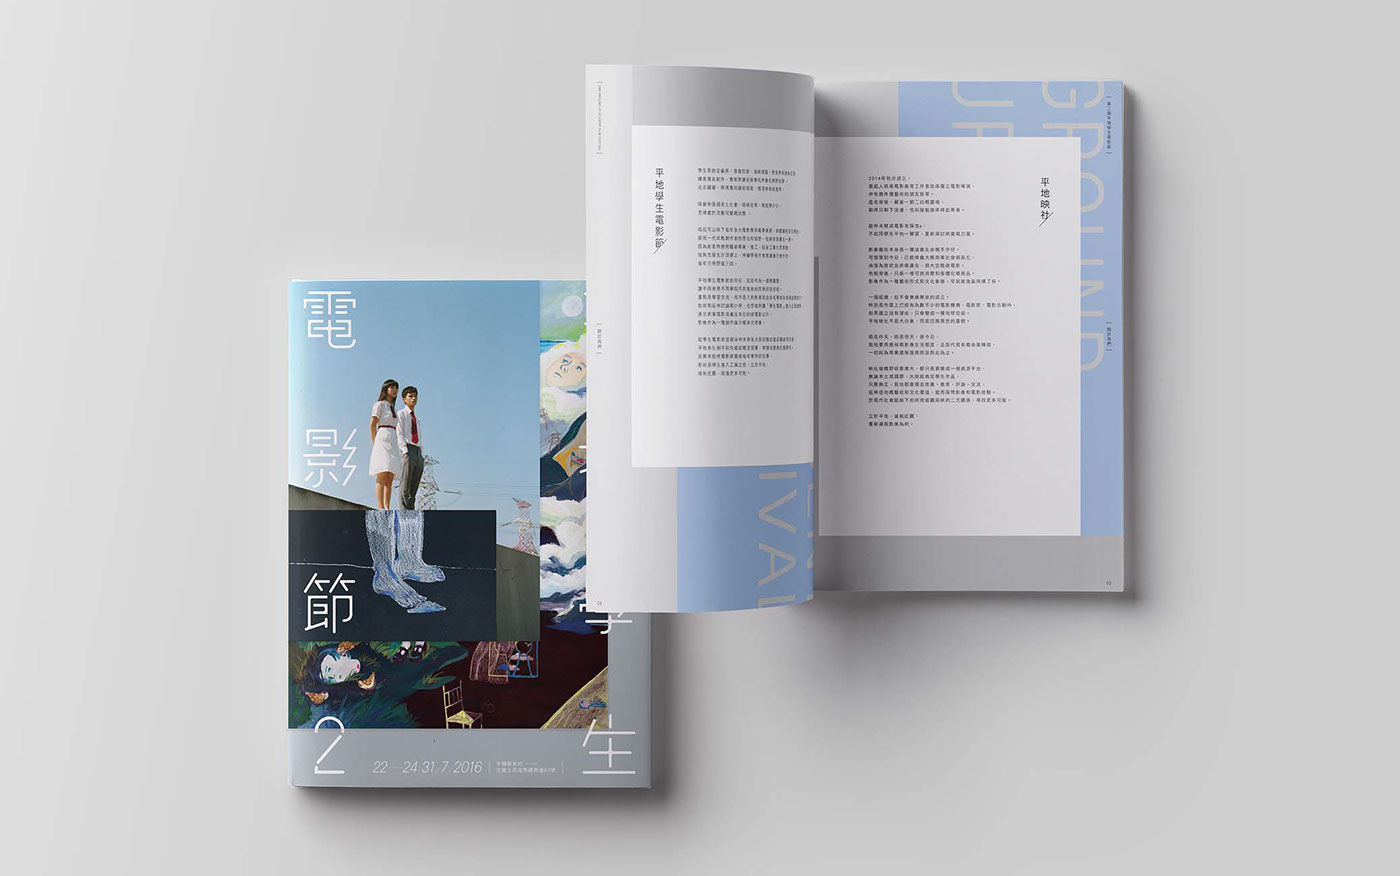 Film  ,student,festival,movie,Hong Kong,Chinese typography,graphic,Event,Exhibition ,design